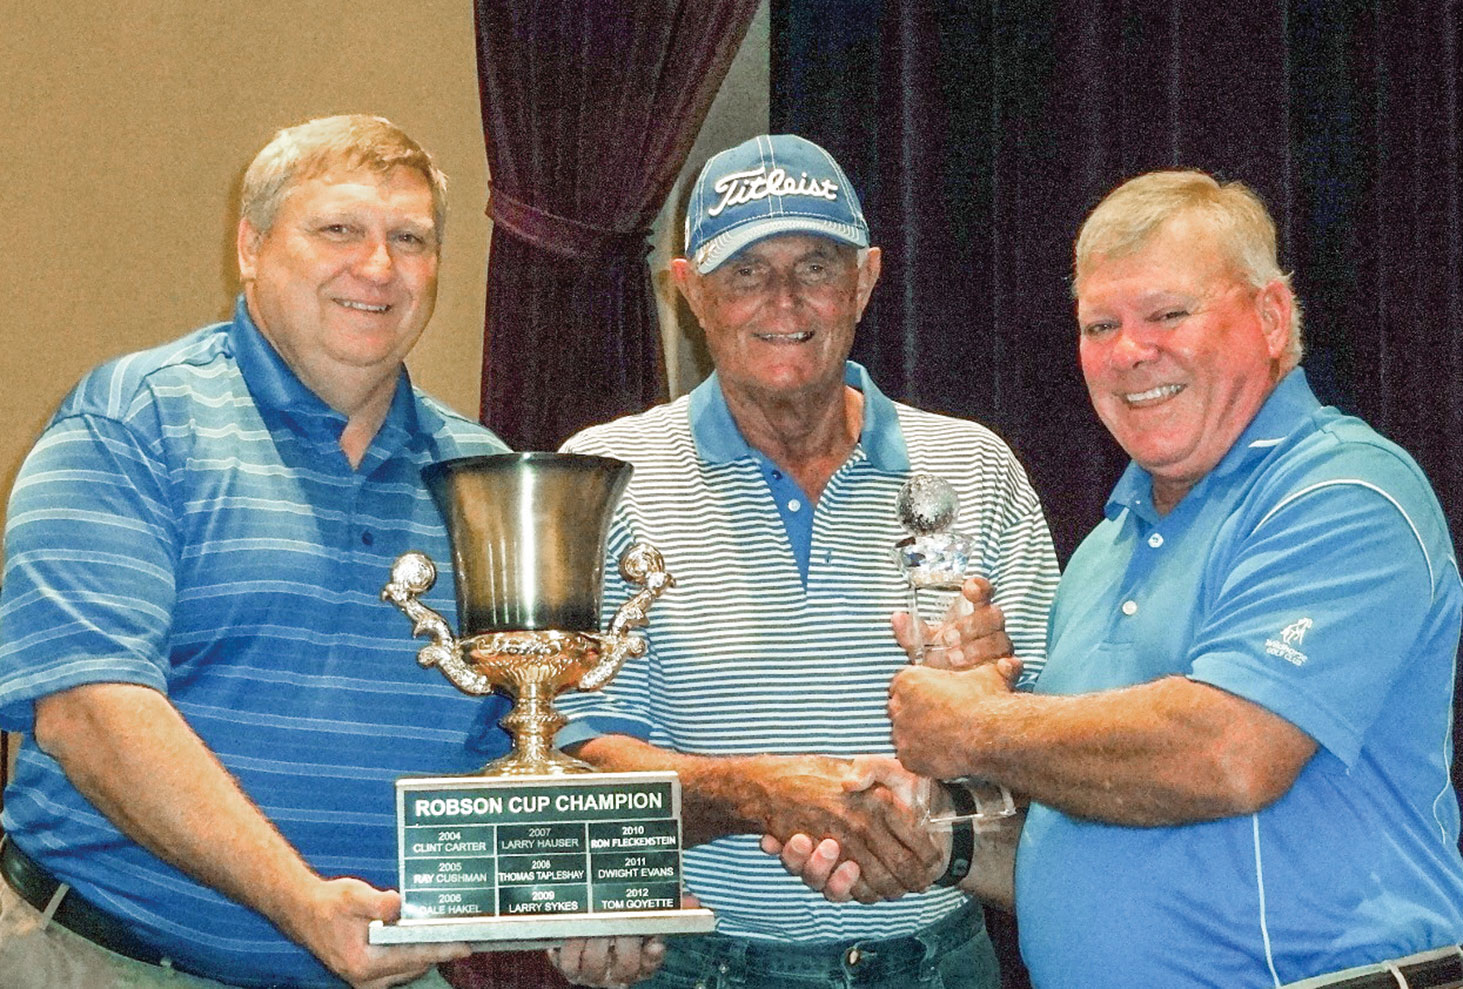 From left to right: David Thatcher, Wildhorse Golf Club, Head Golf Professional; Ted Dunson, Robson Cup Winner 2016 and Joe Cooper, President, Robson Ranch Men's Golf Association